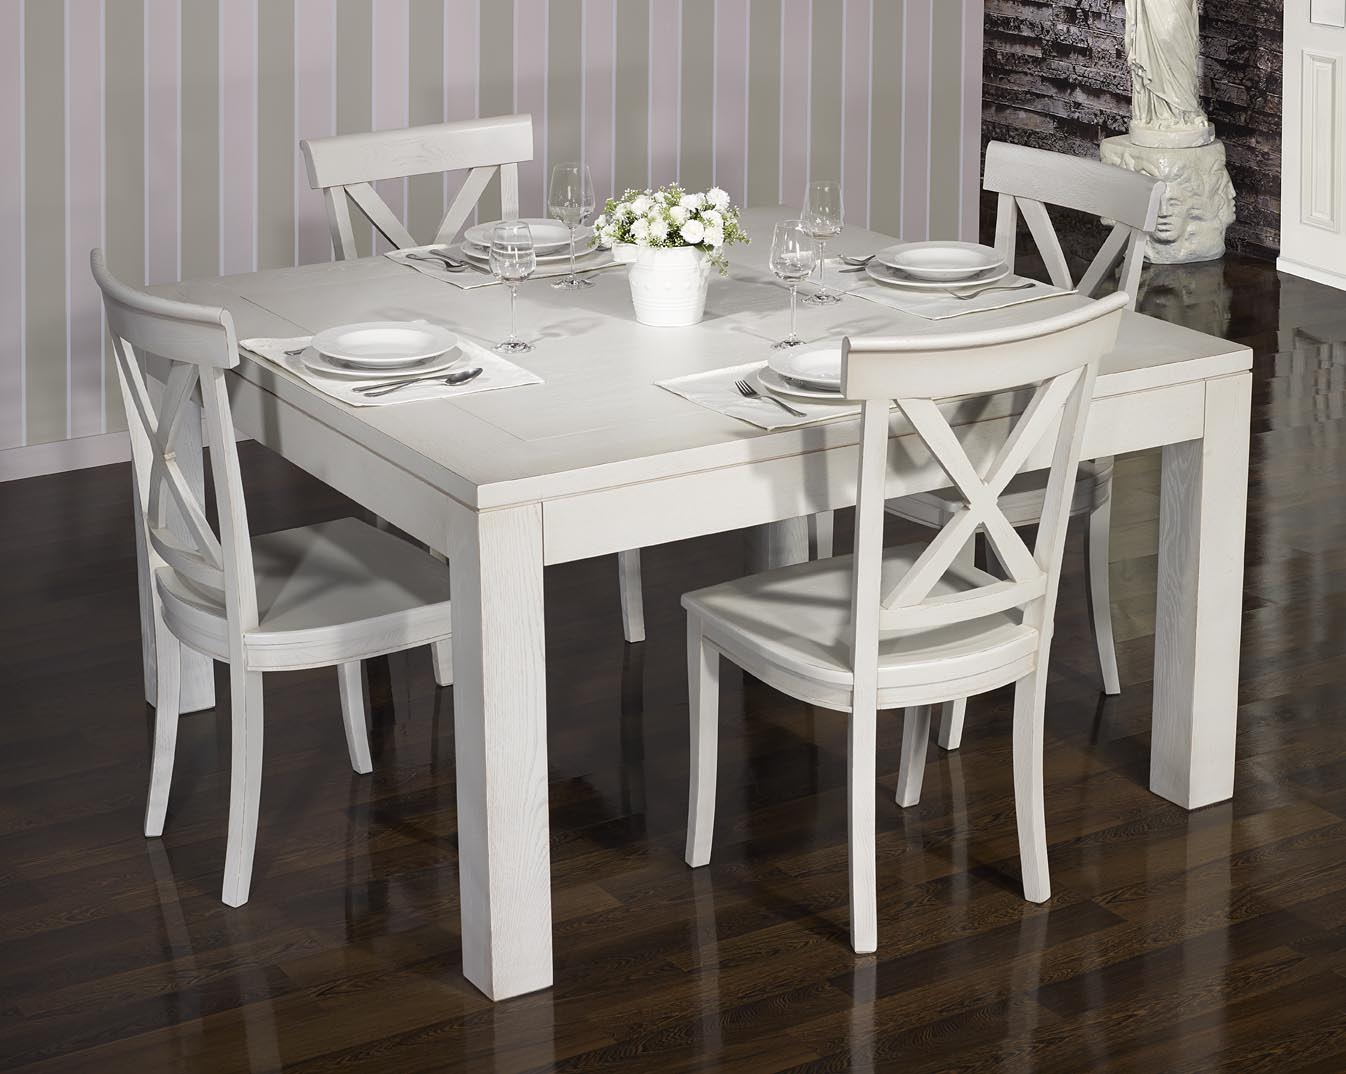 Table de salle manger 140 140 contemporaine en ch ne - Table de salle a manger contemporaine ...